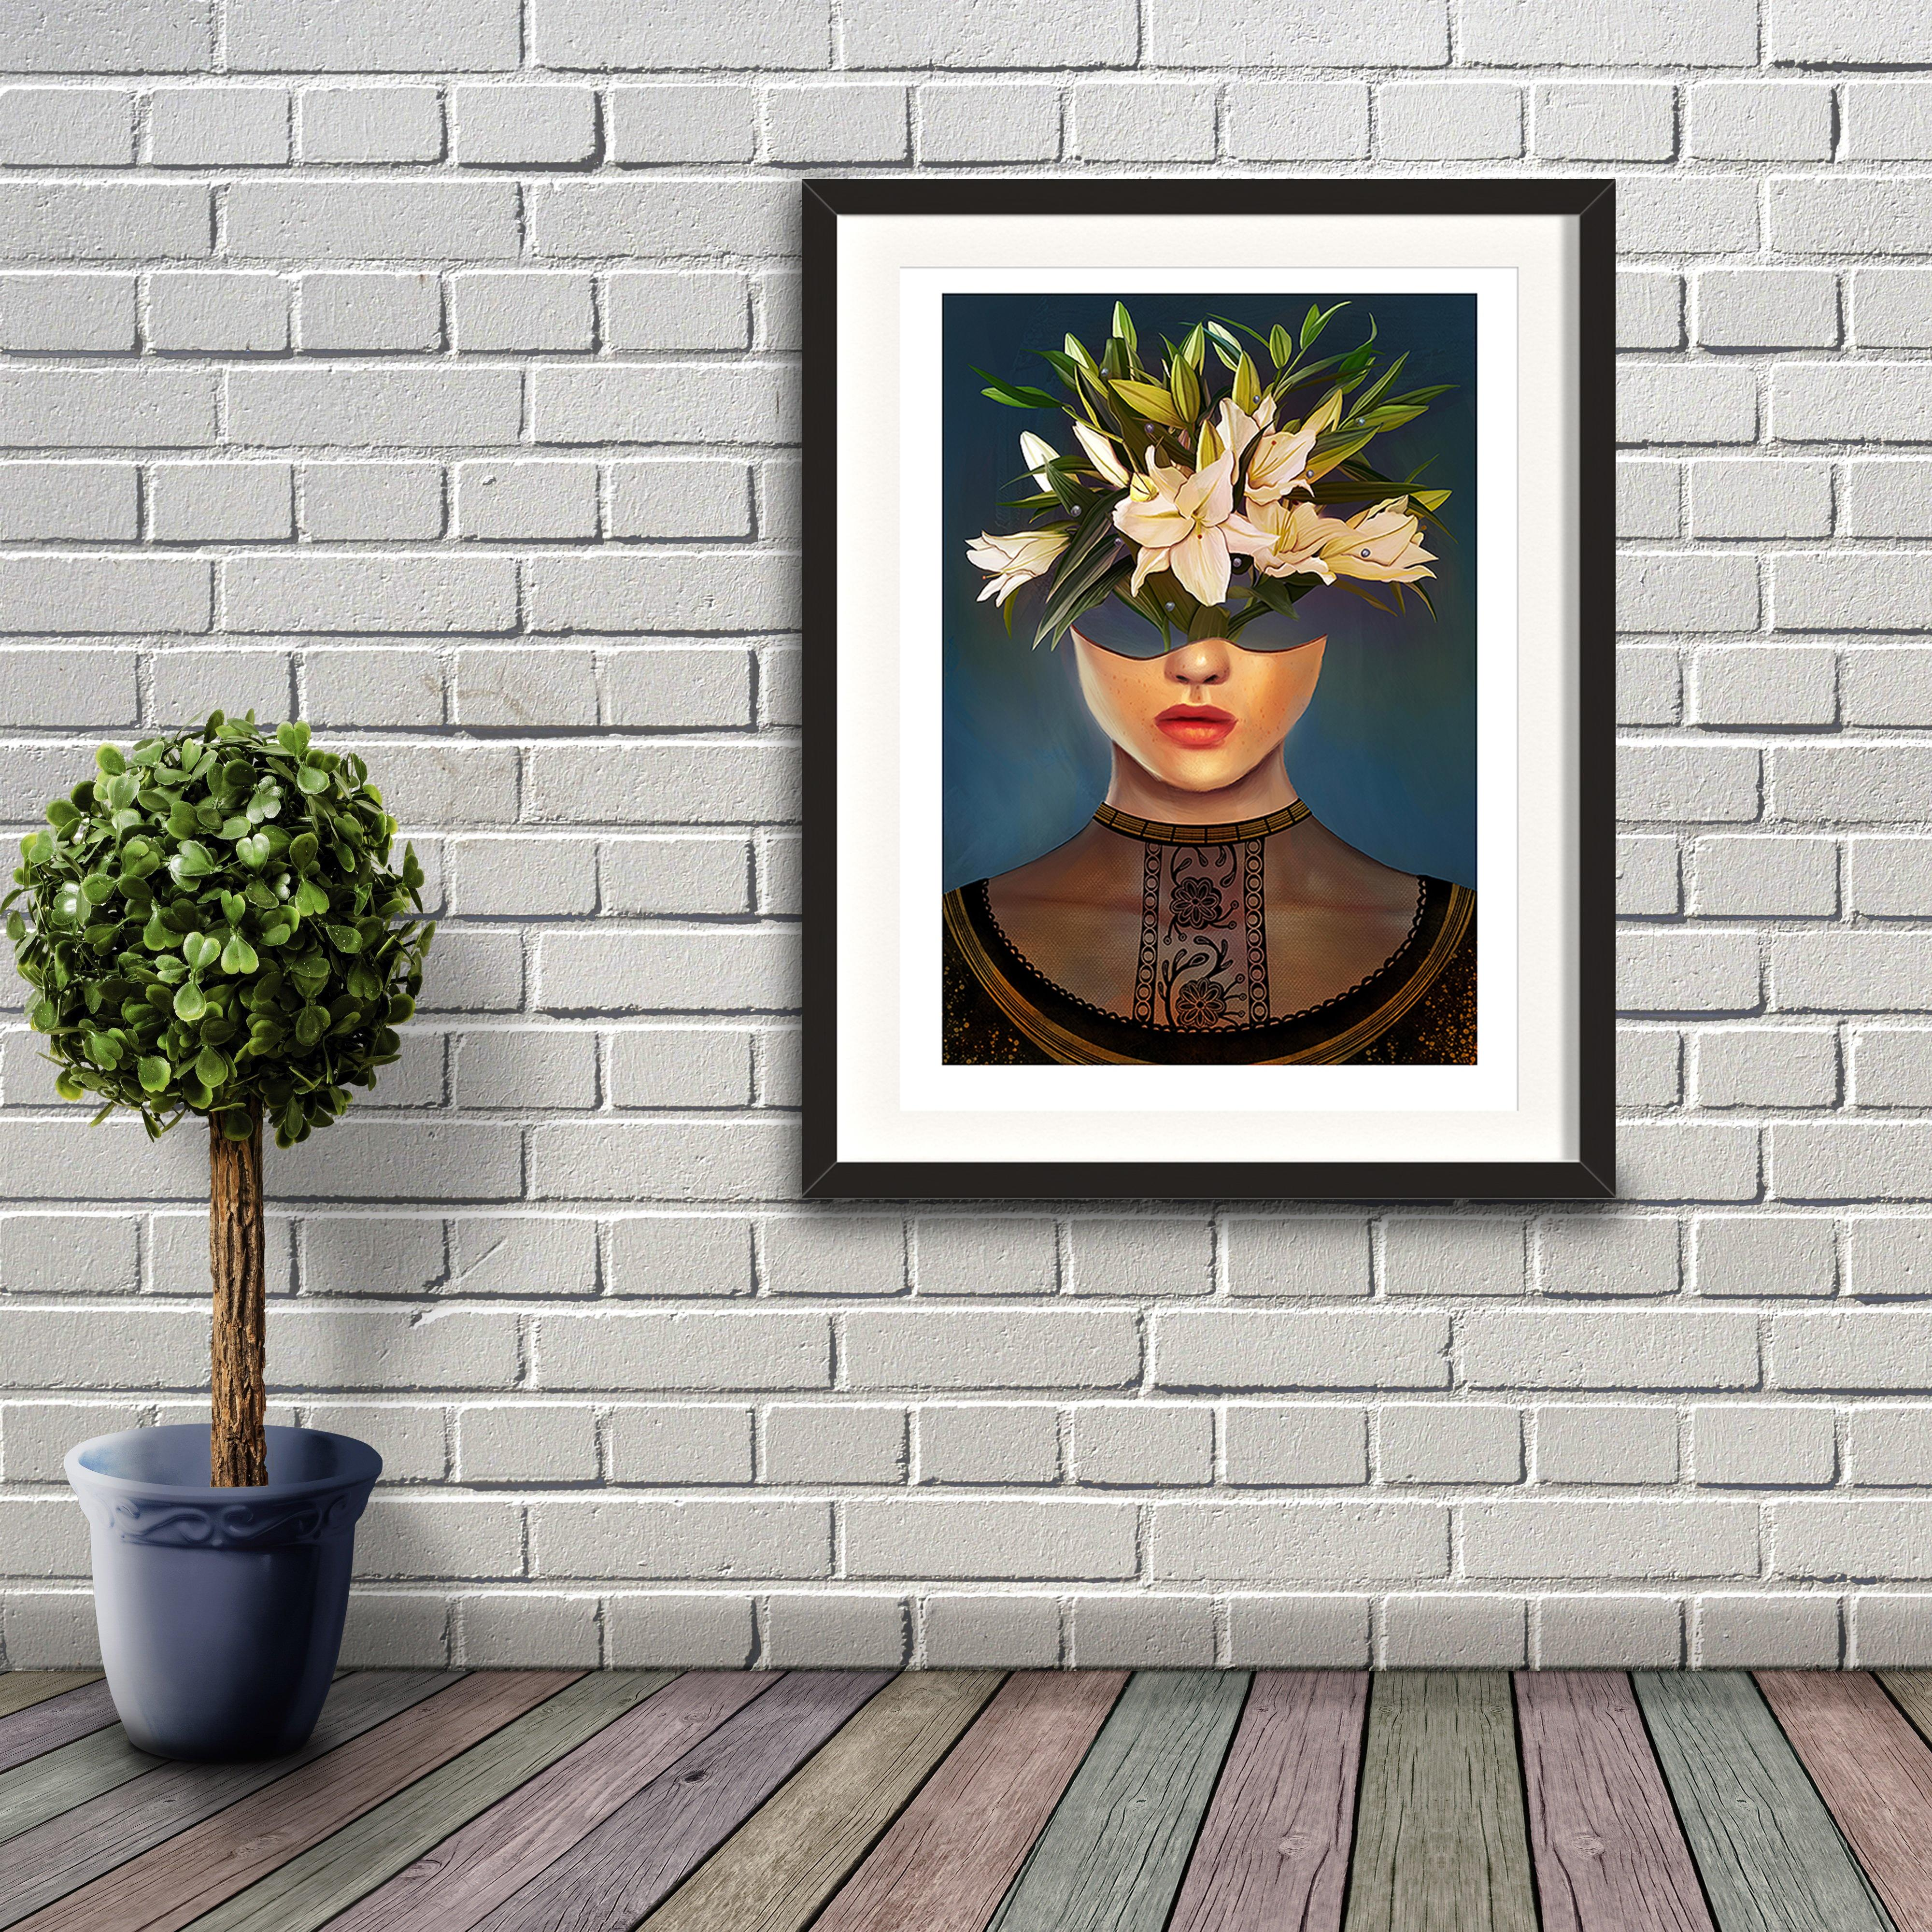 A digital painting by Lily Bourne printed on eco fine art paper titled Lilium showing a female head dressed in a black lace top. The head acts as a vase for white lily flowers. Artwork shown in a black frame hanging on a brick wall.